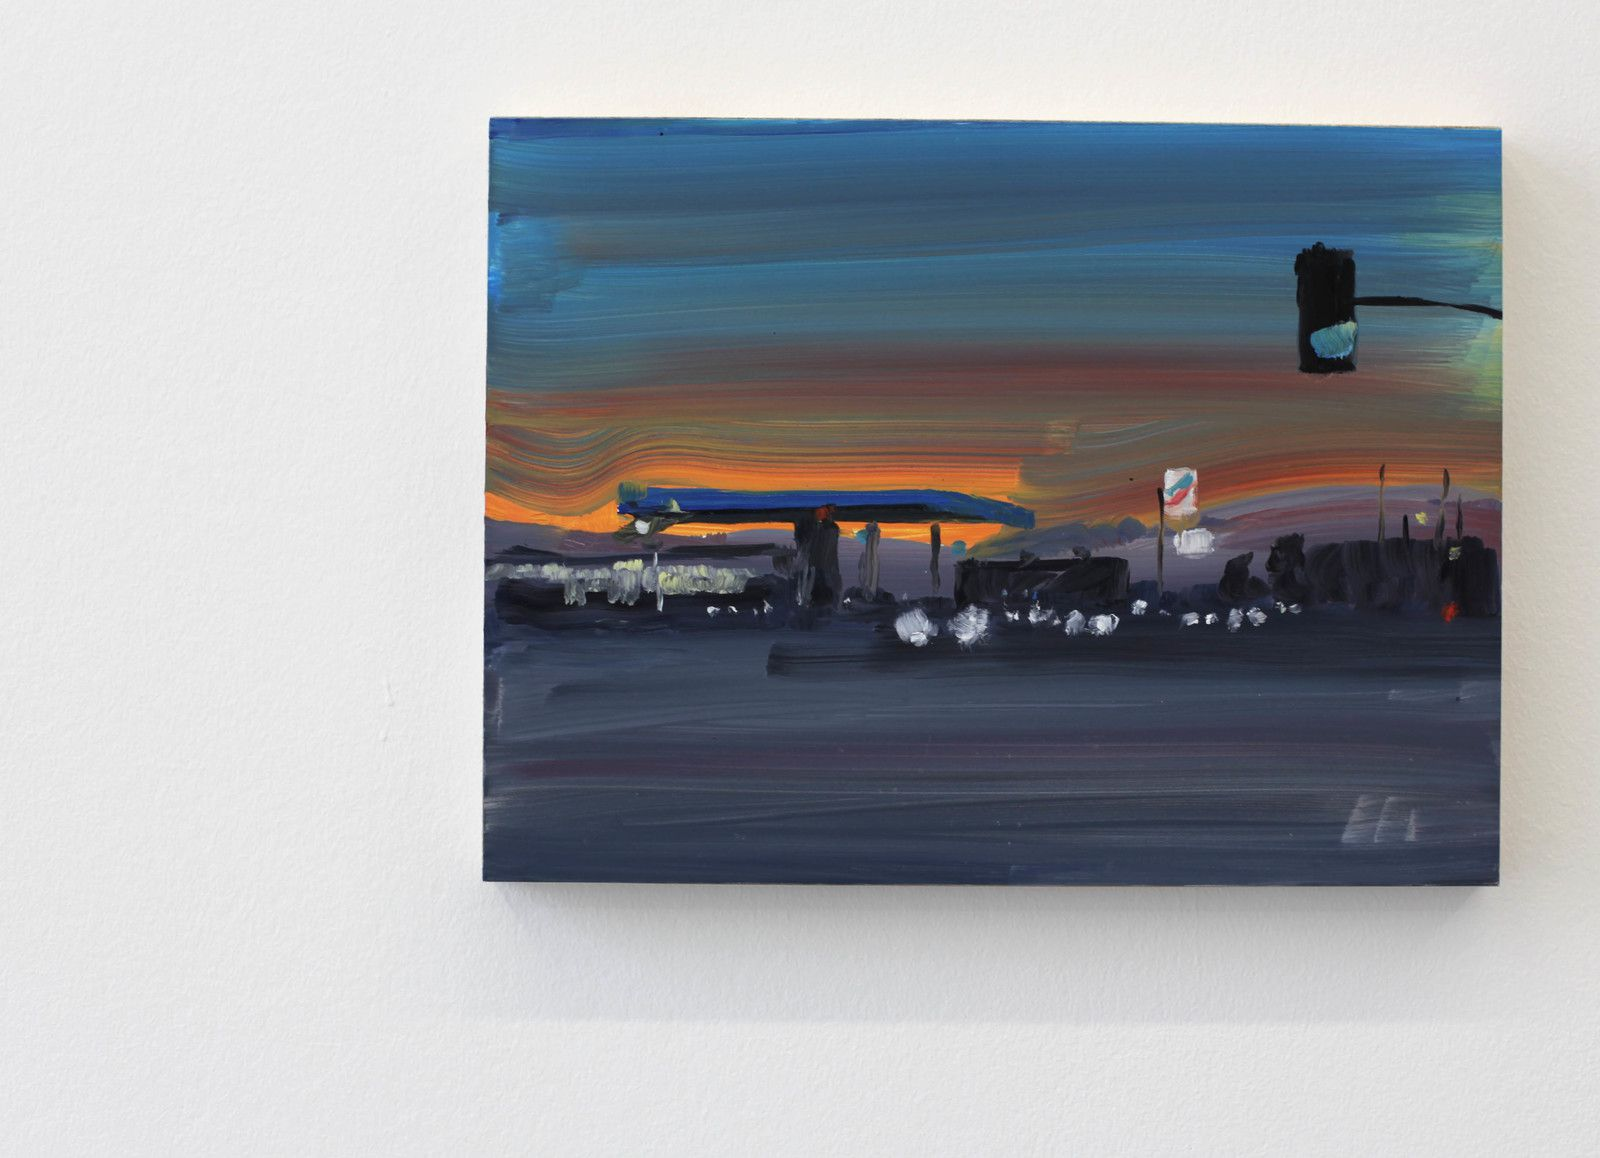 """Gas Station"", 2019 de Jean Philippe DELHOMME - Courtesy Galerie Perrotin © Photo Éric Simon"